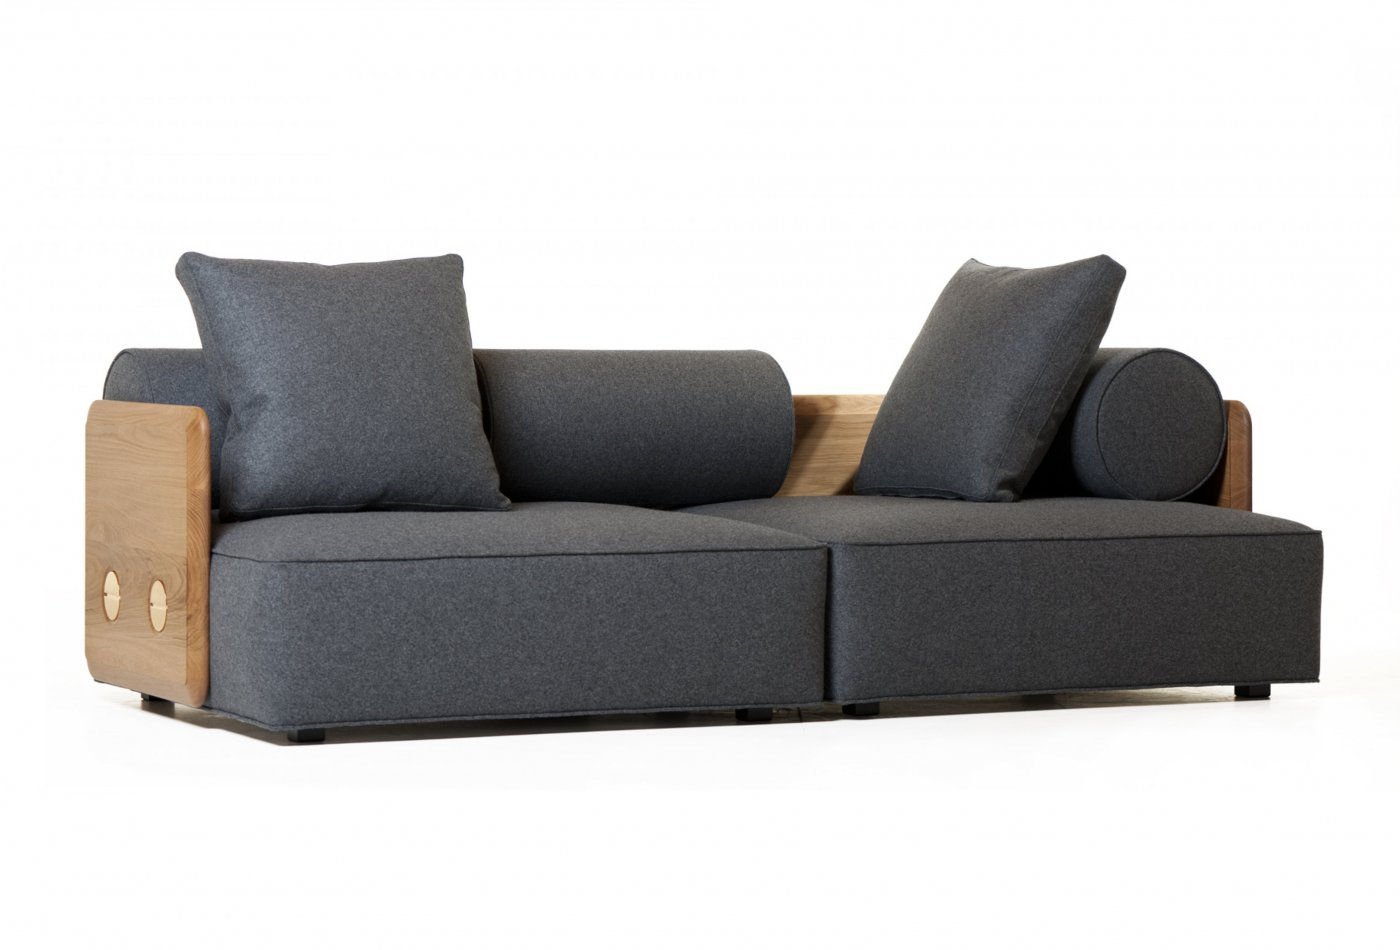 Ordinaire View In Gallery Deco Sofa Profile In Danish Oiled Oak And Wool